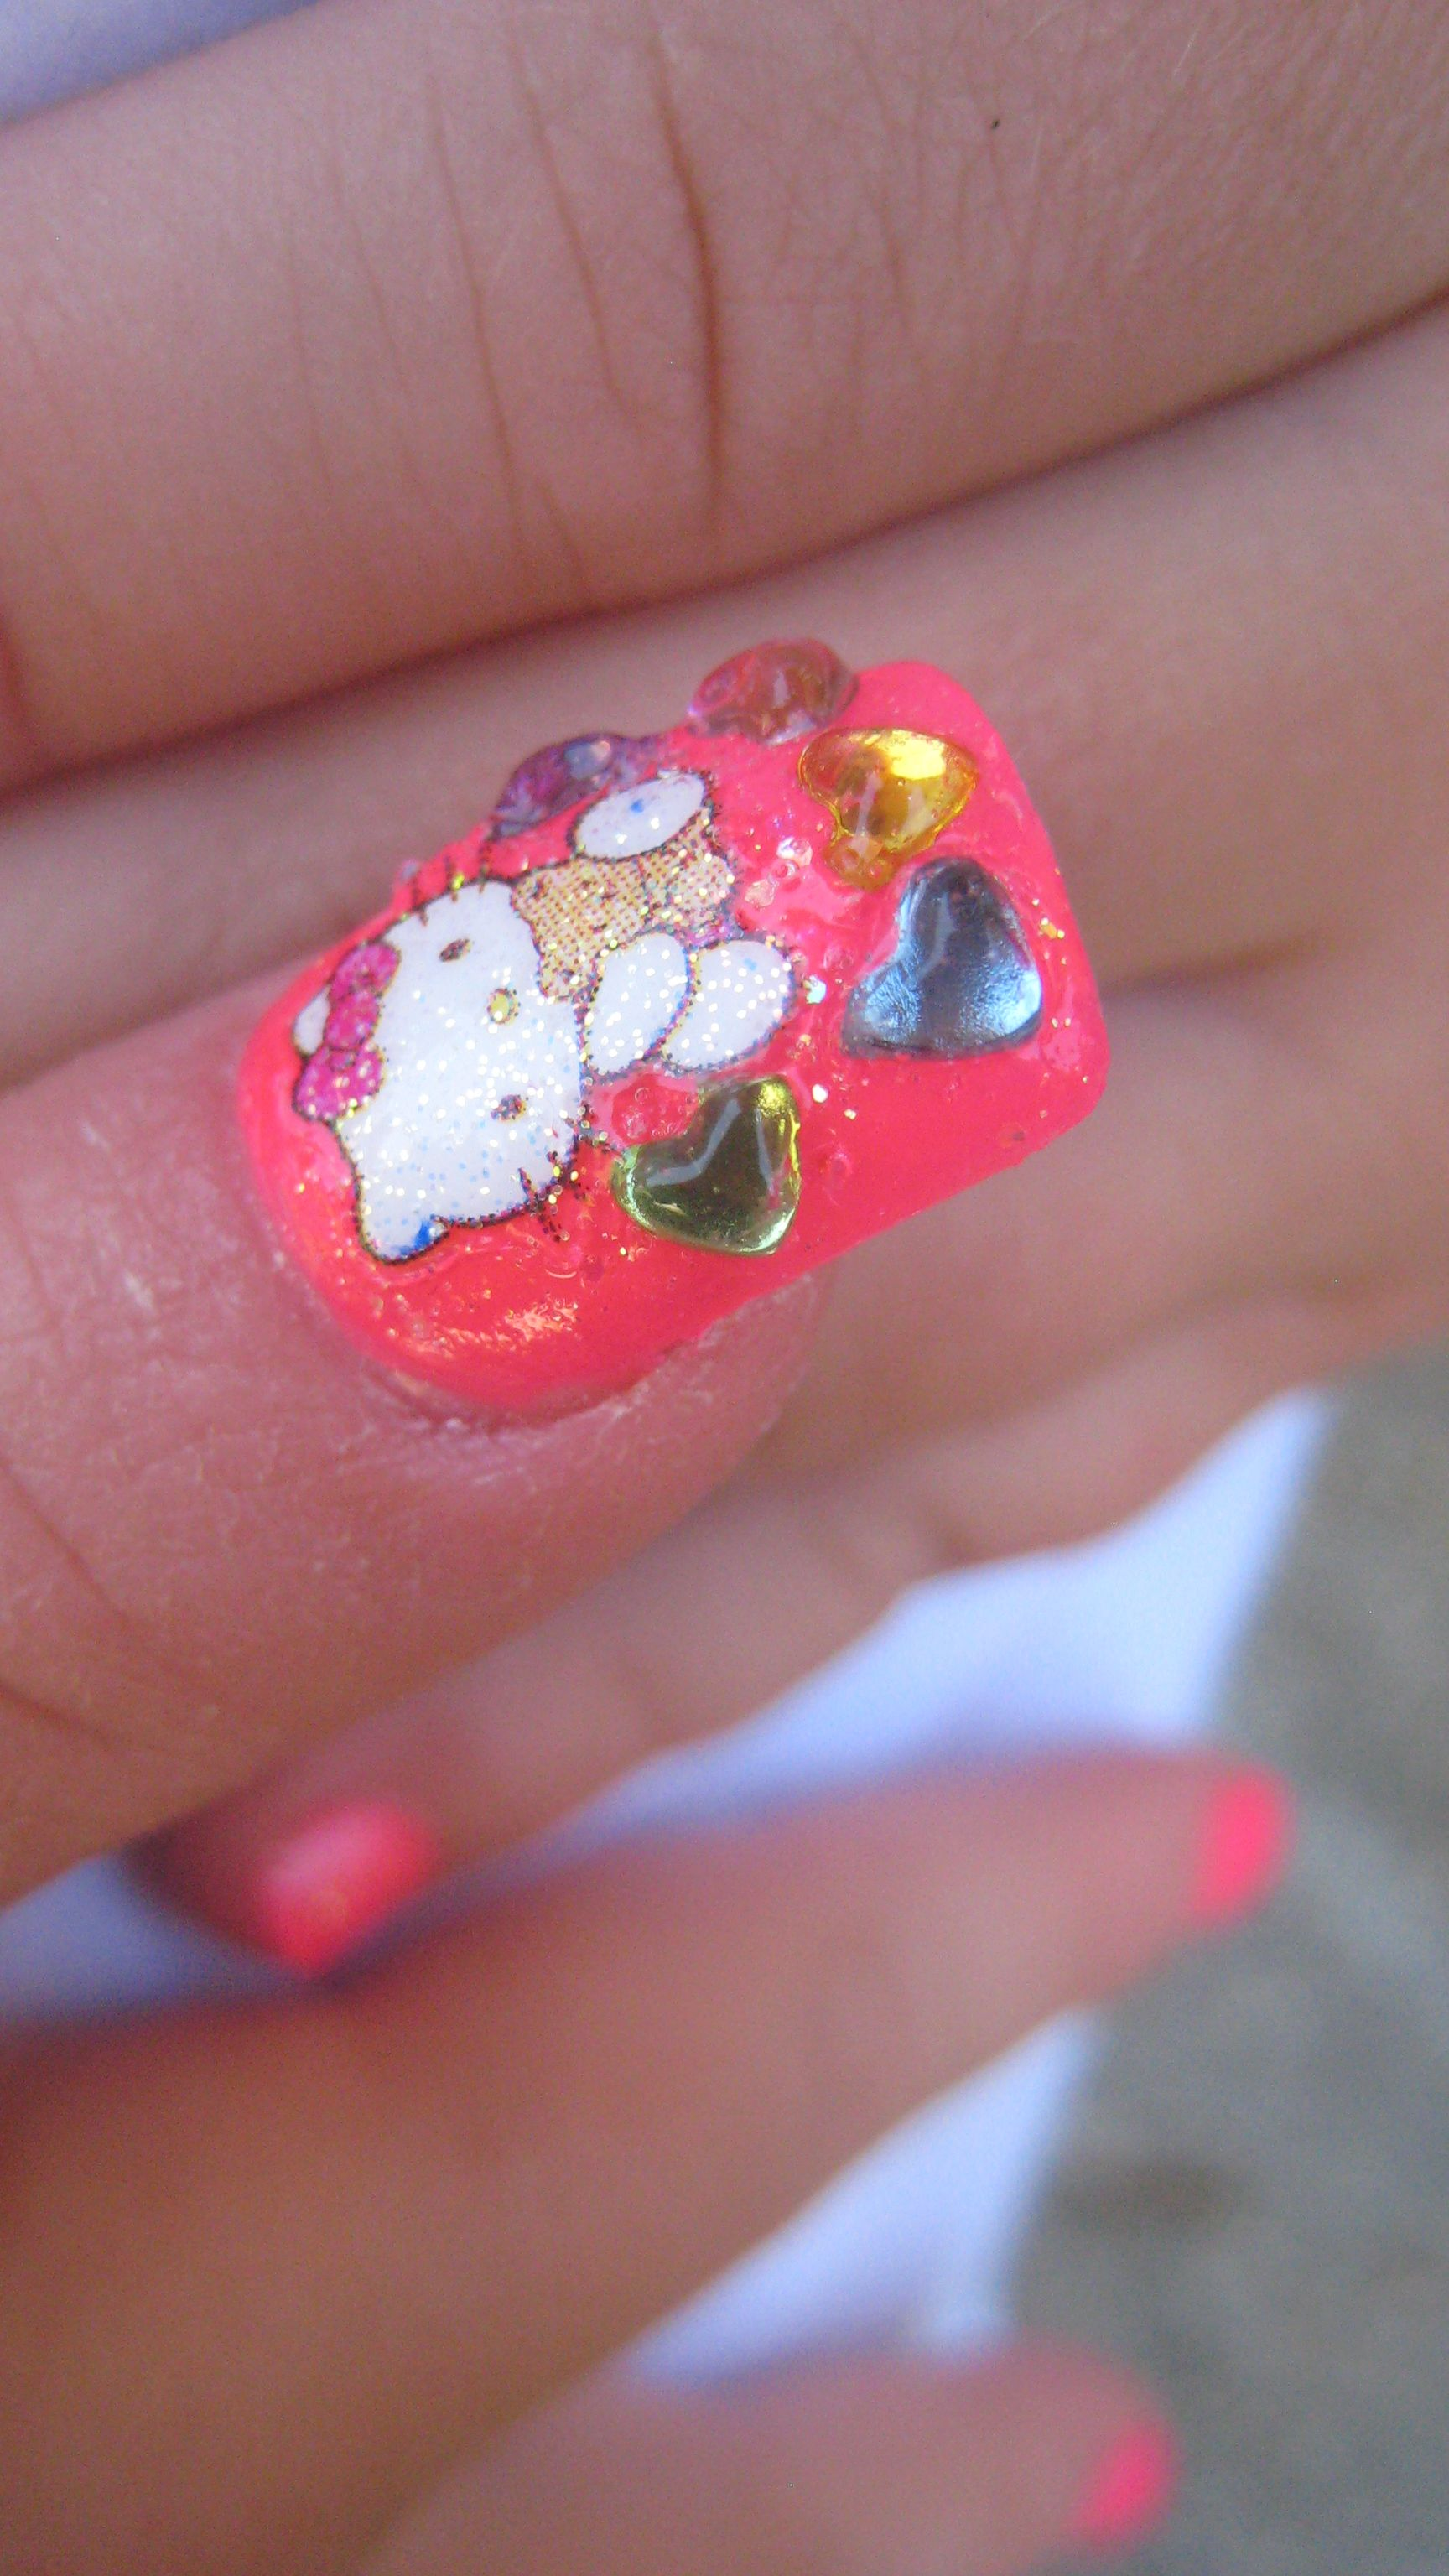 going down in style | Nail tech